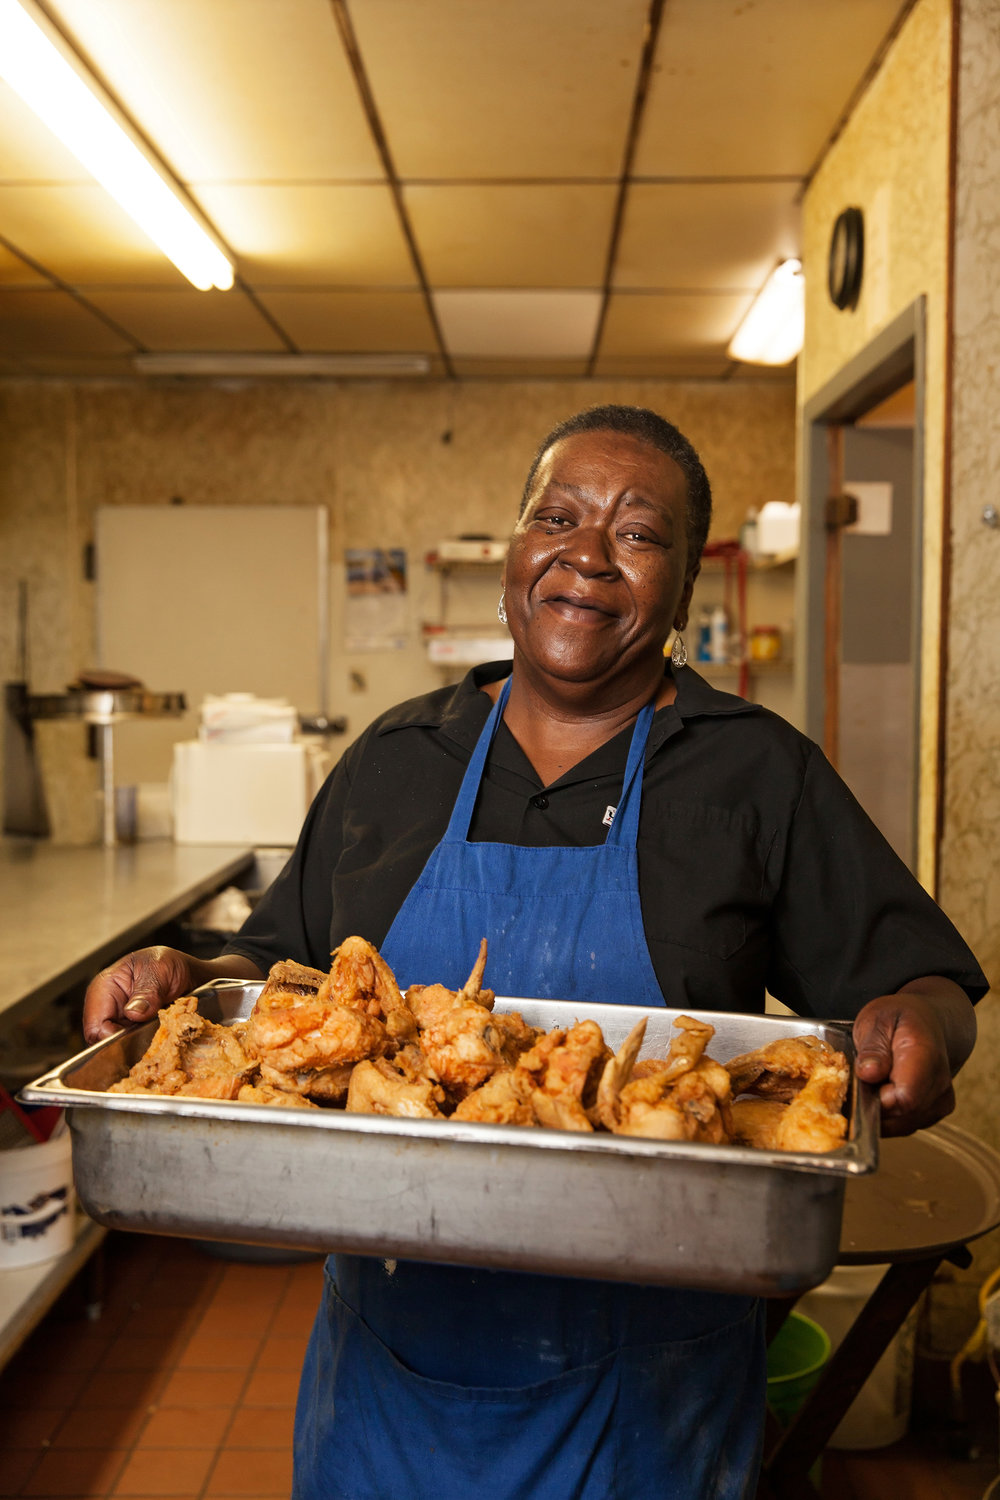 Mrs. Dorothy presents a fresh batch of friend chicken at Mama Lou's Restaurant in Robertsdale, Alabama.